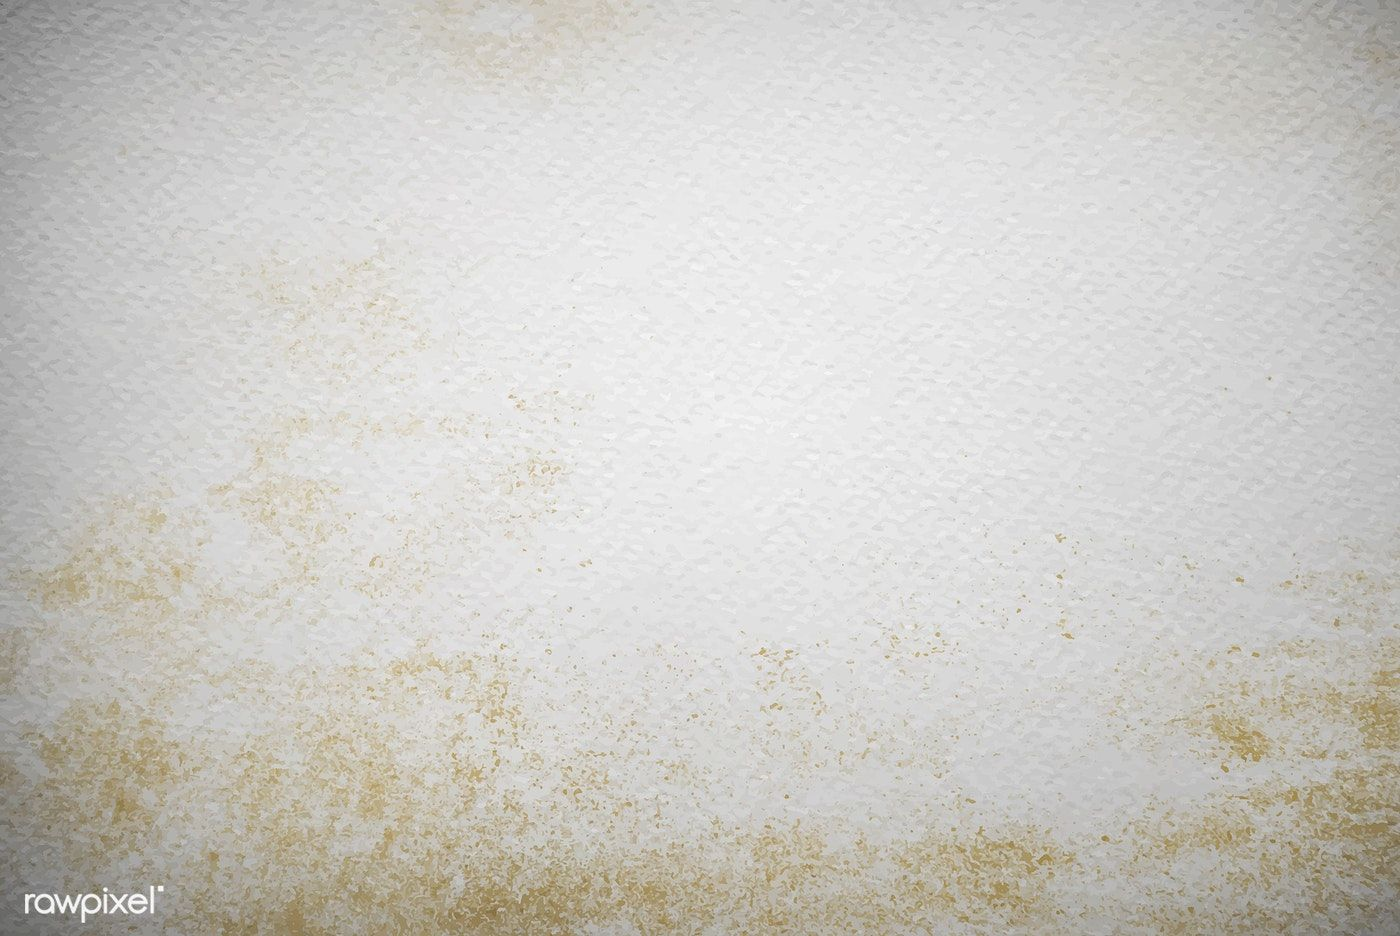 Vintage Textured Paper Background Vector Free Image By Rawpixel